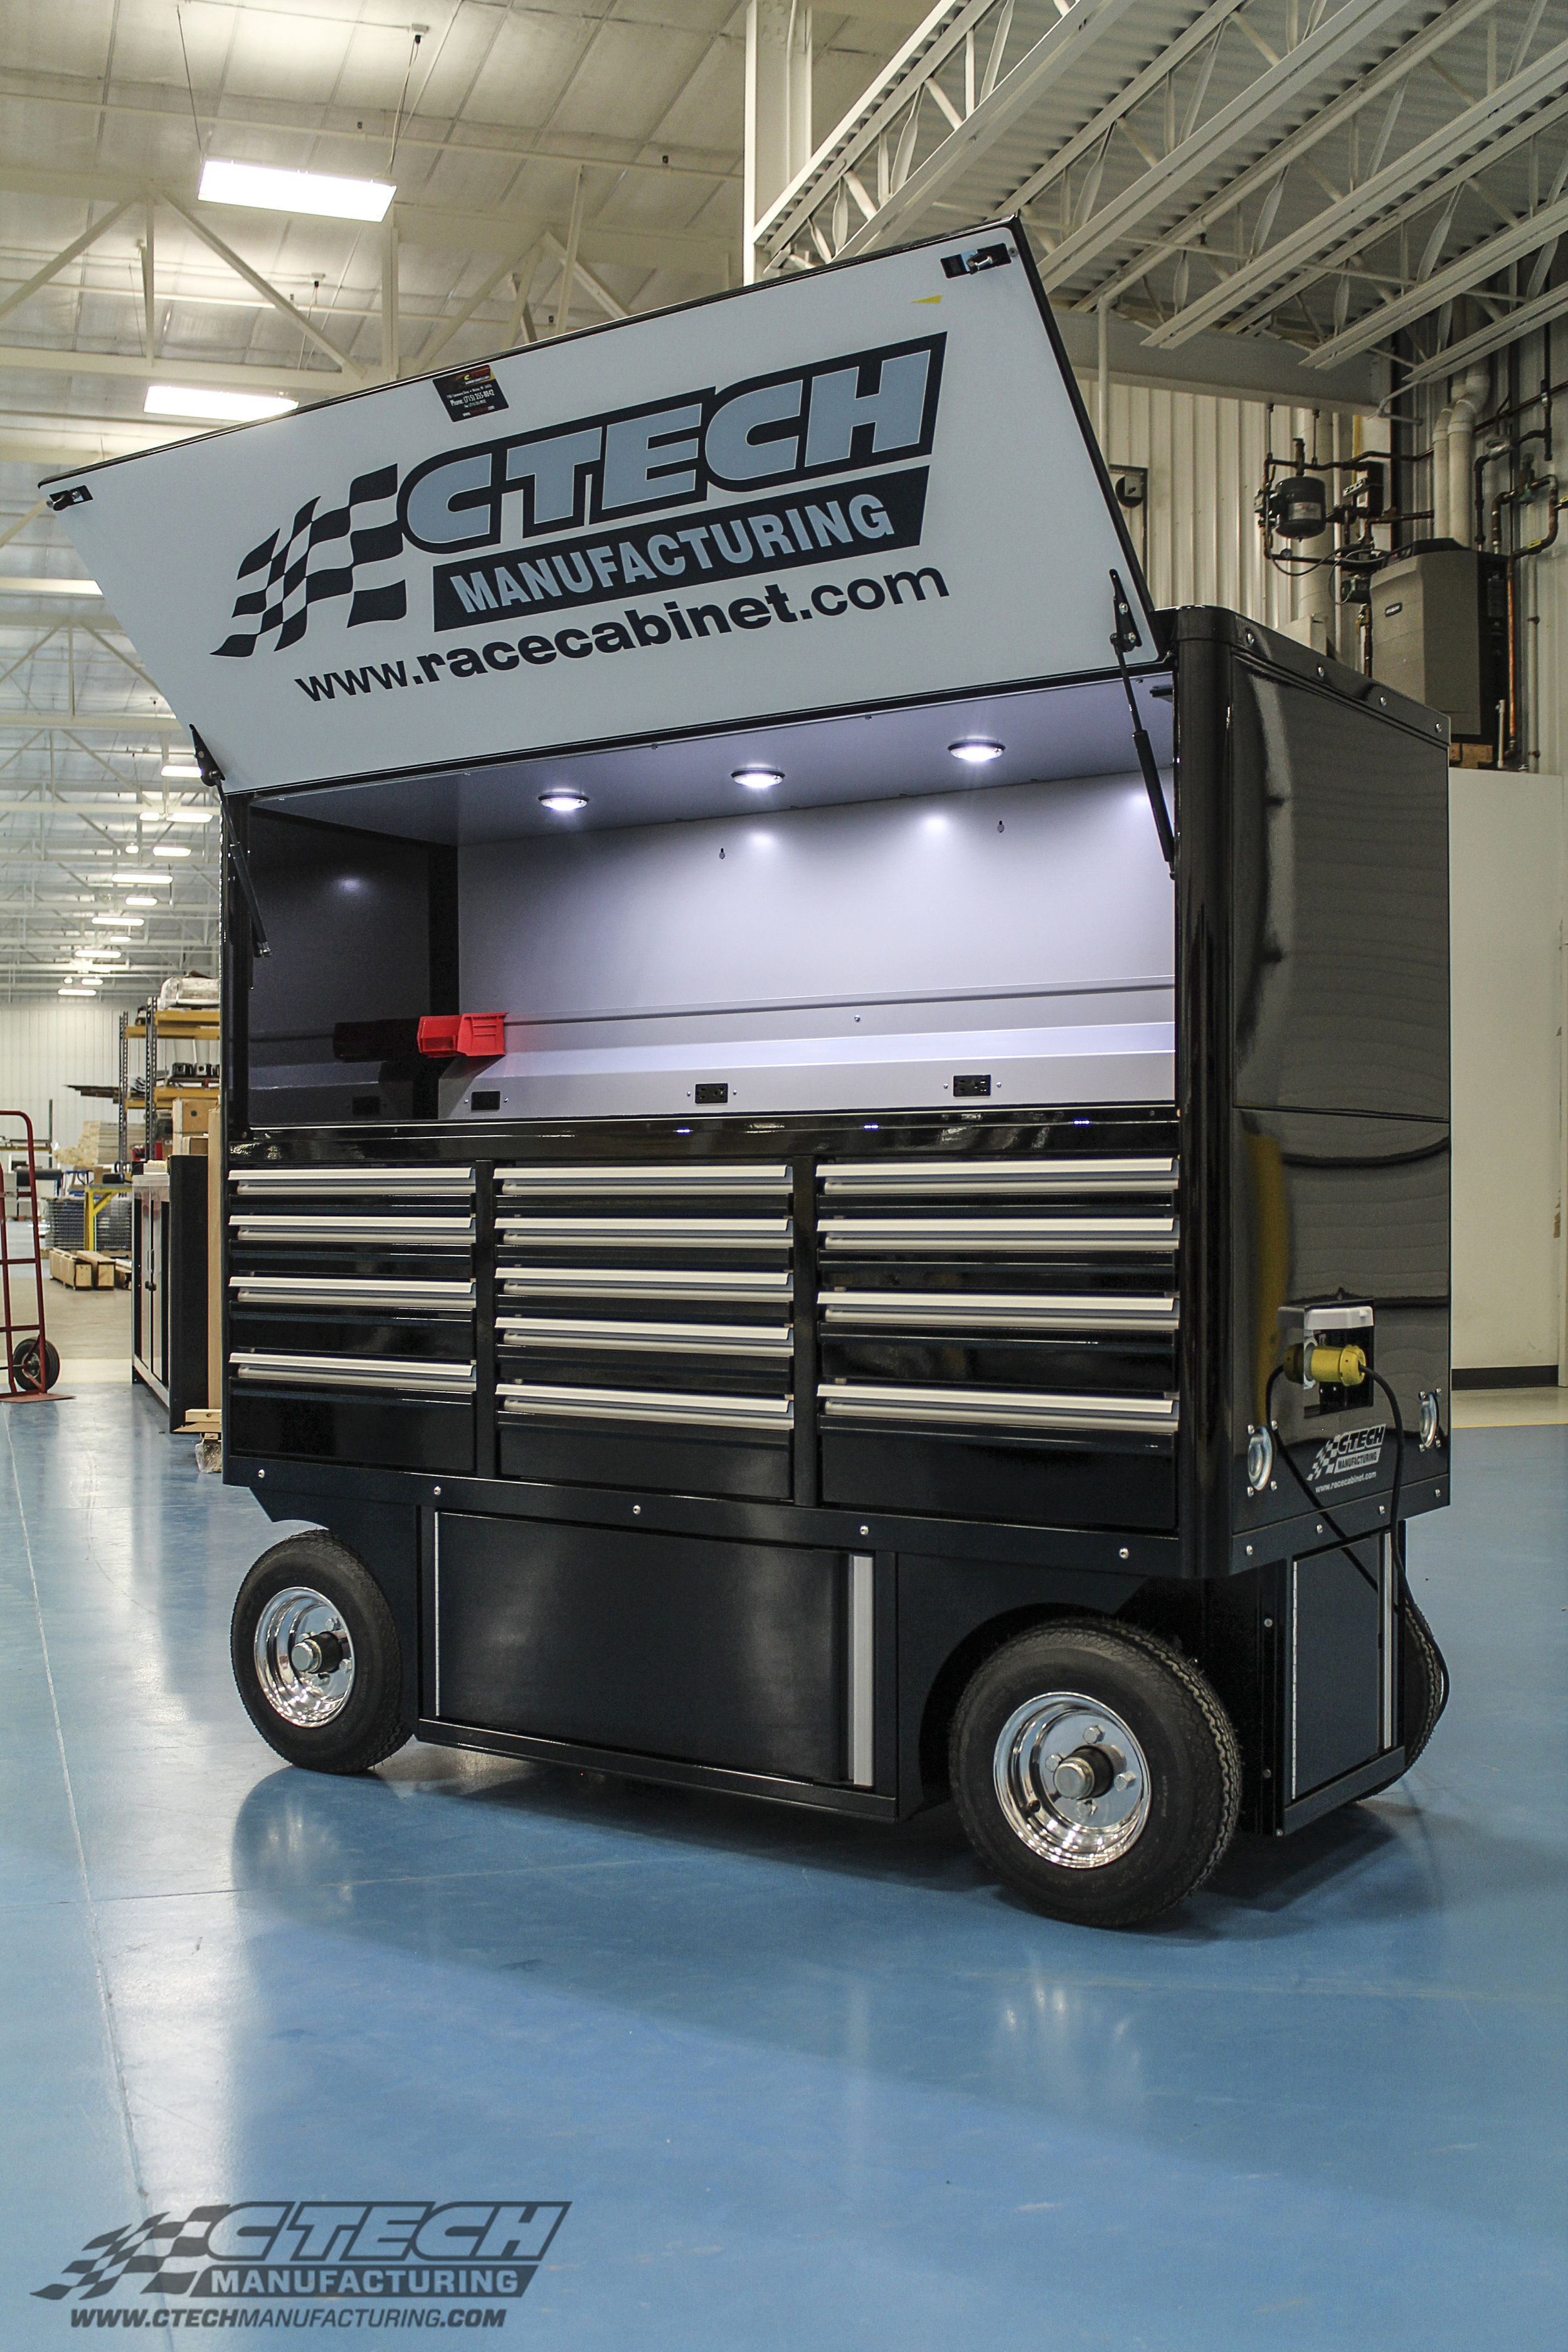 Ship-to-Shore power integration brings state-of-the-art functionality to CTECH Crew Chief Carts. Interior LED lights make sure that the spacious worktop is fully illuminated. Other power and pneumatic distribution options are also available for all carts.